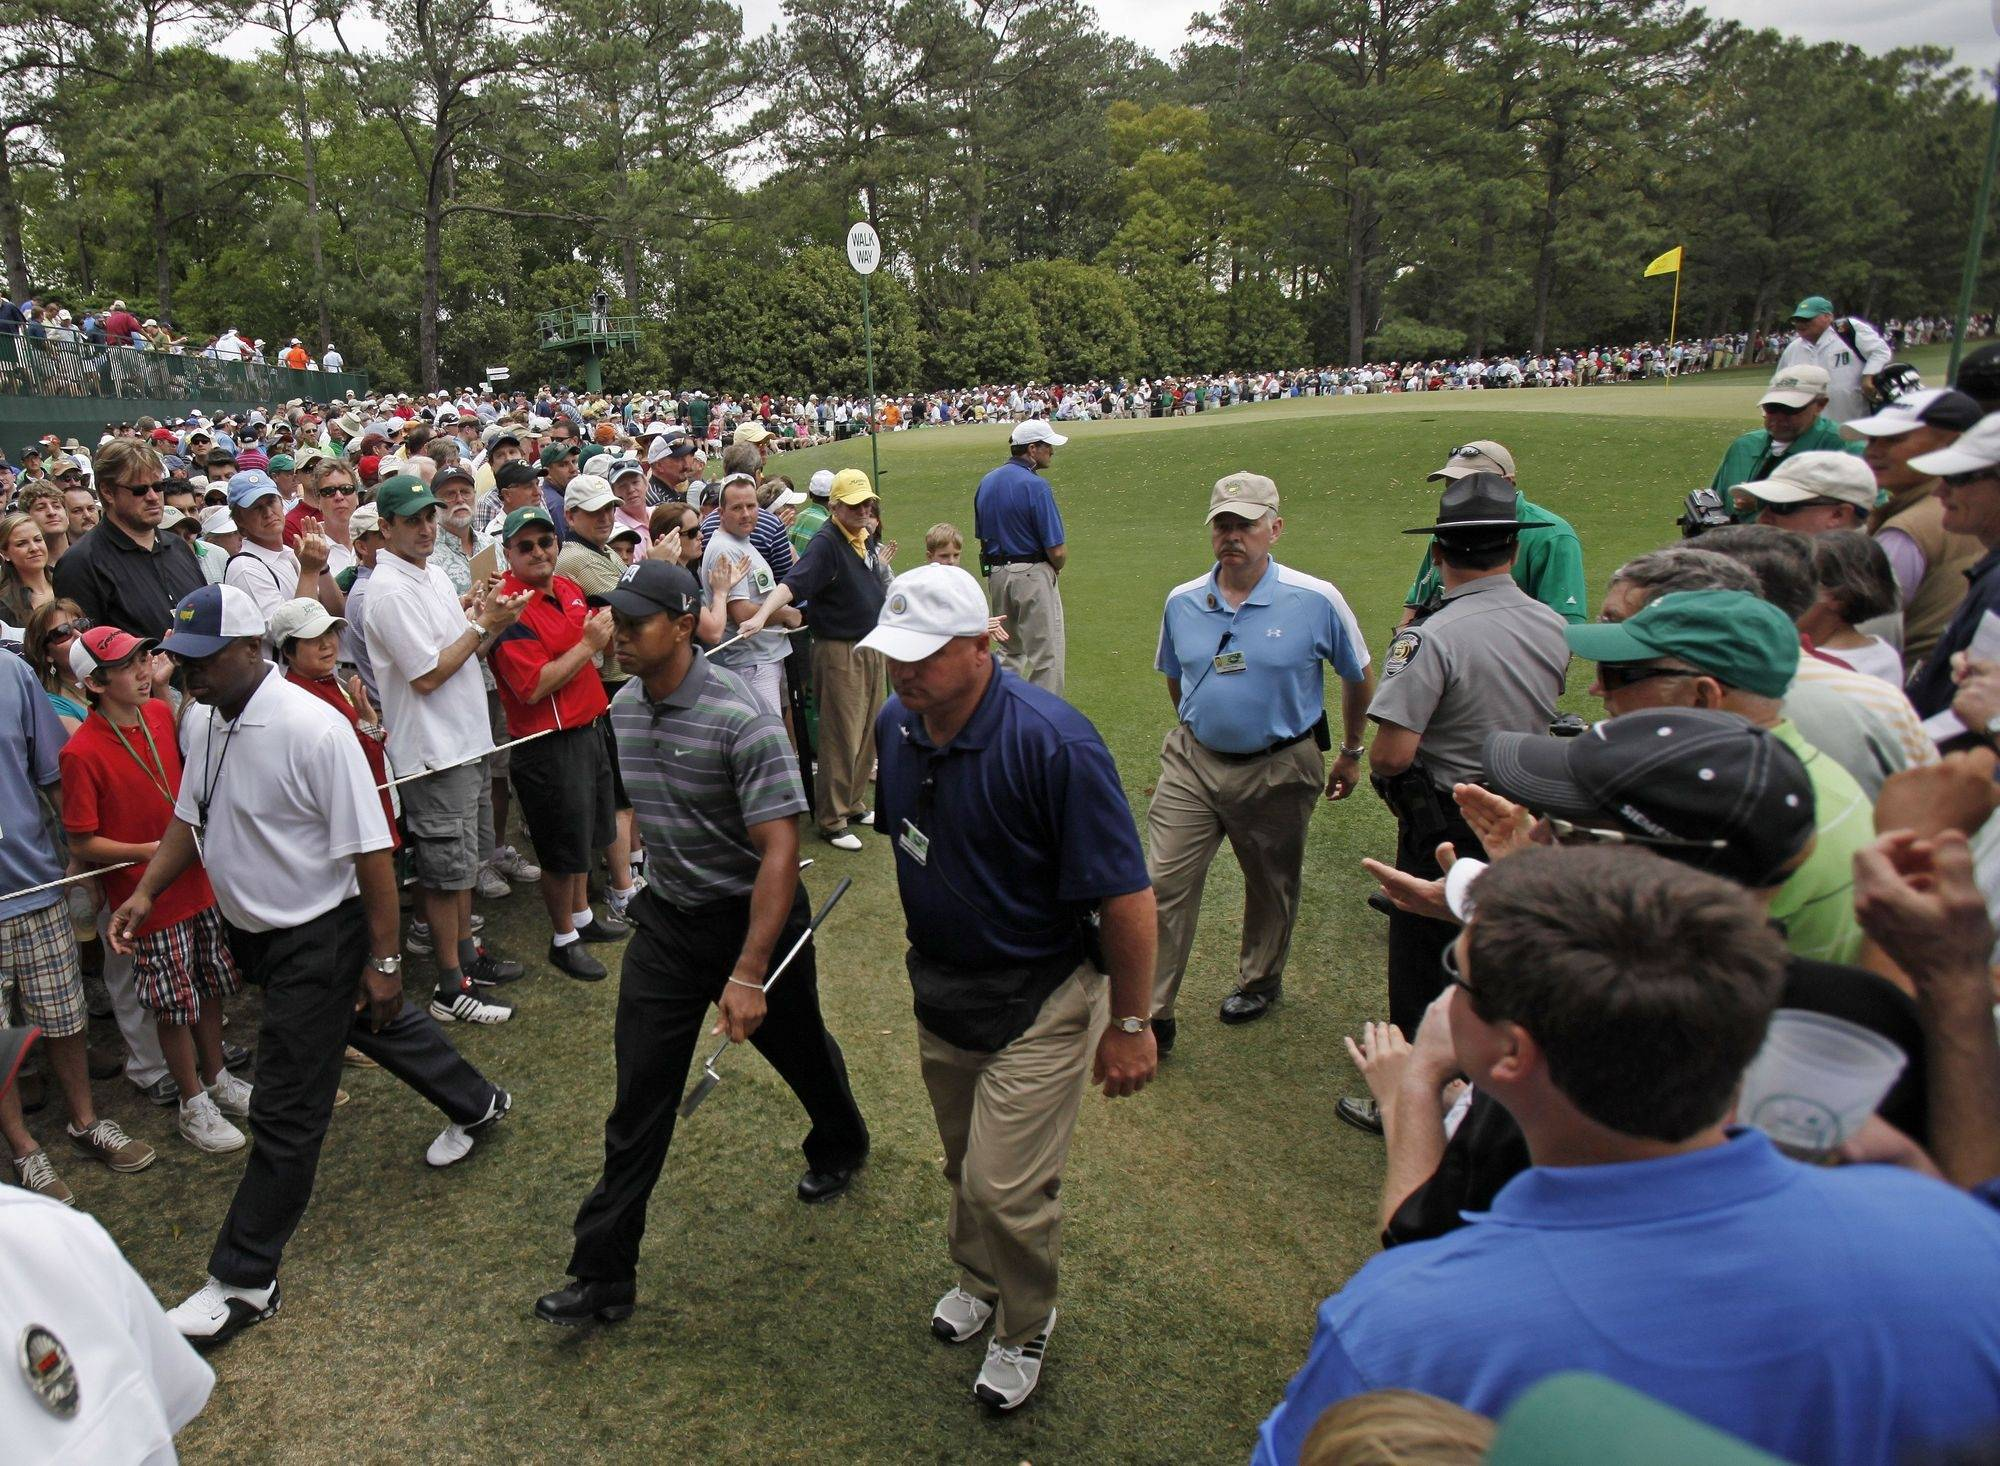 Escorted by security personnel, Tiger Woods walks to the second tee during the first round of the Masters .